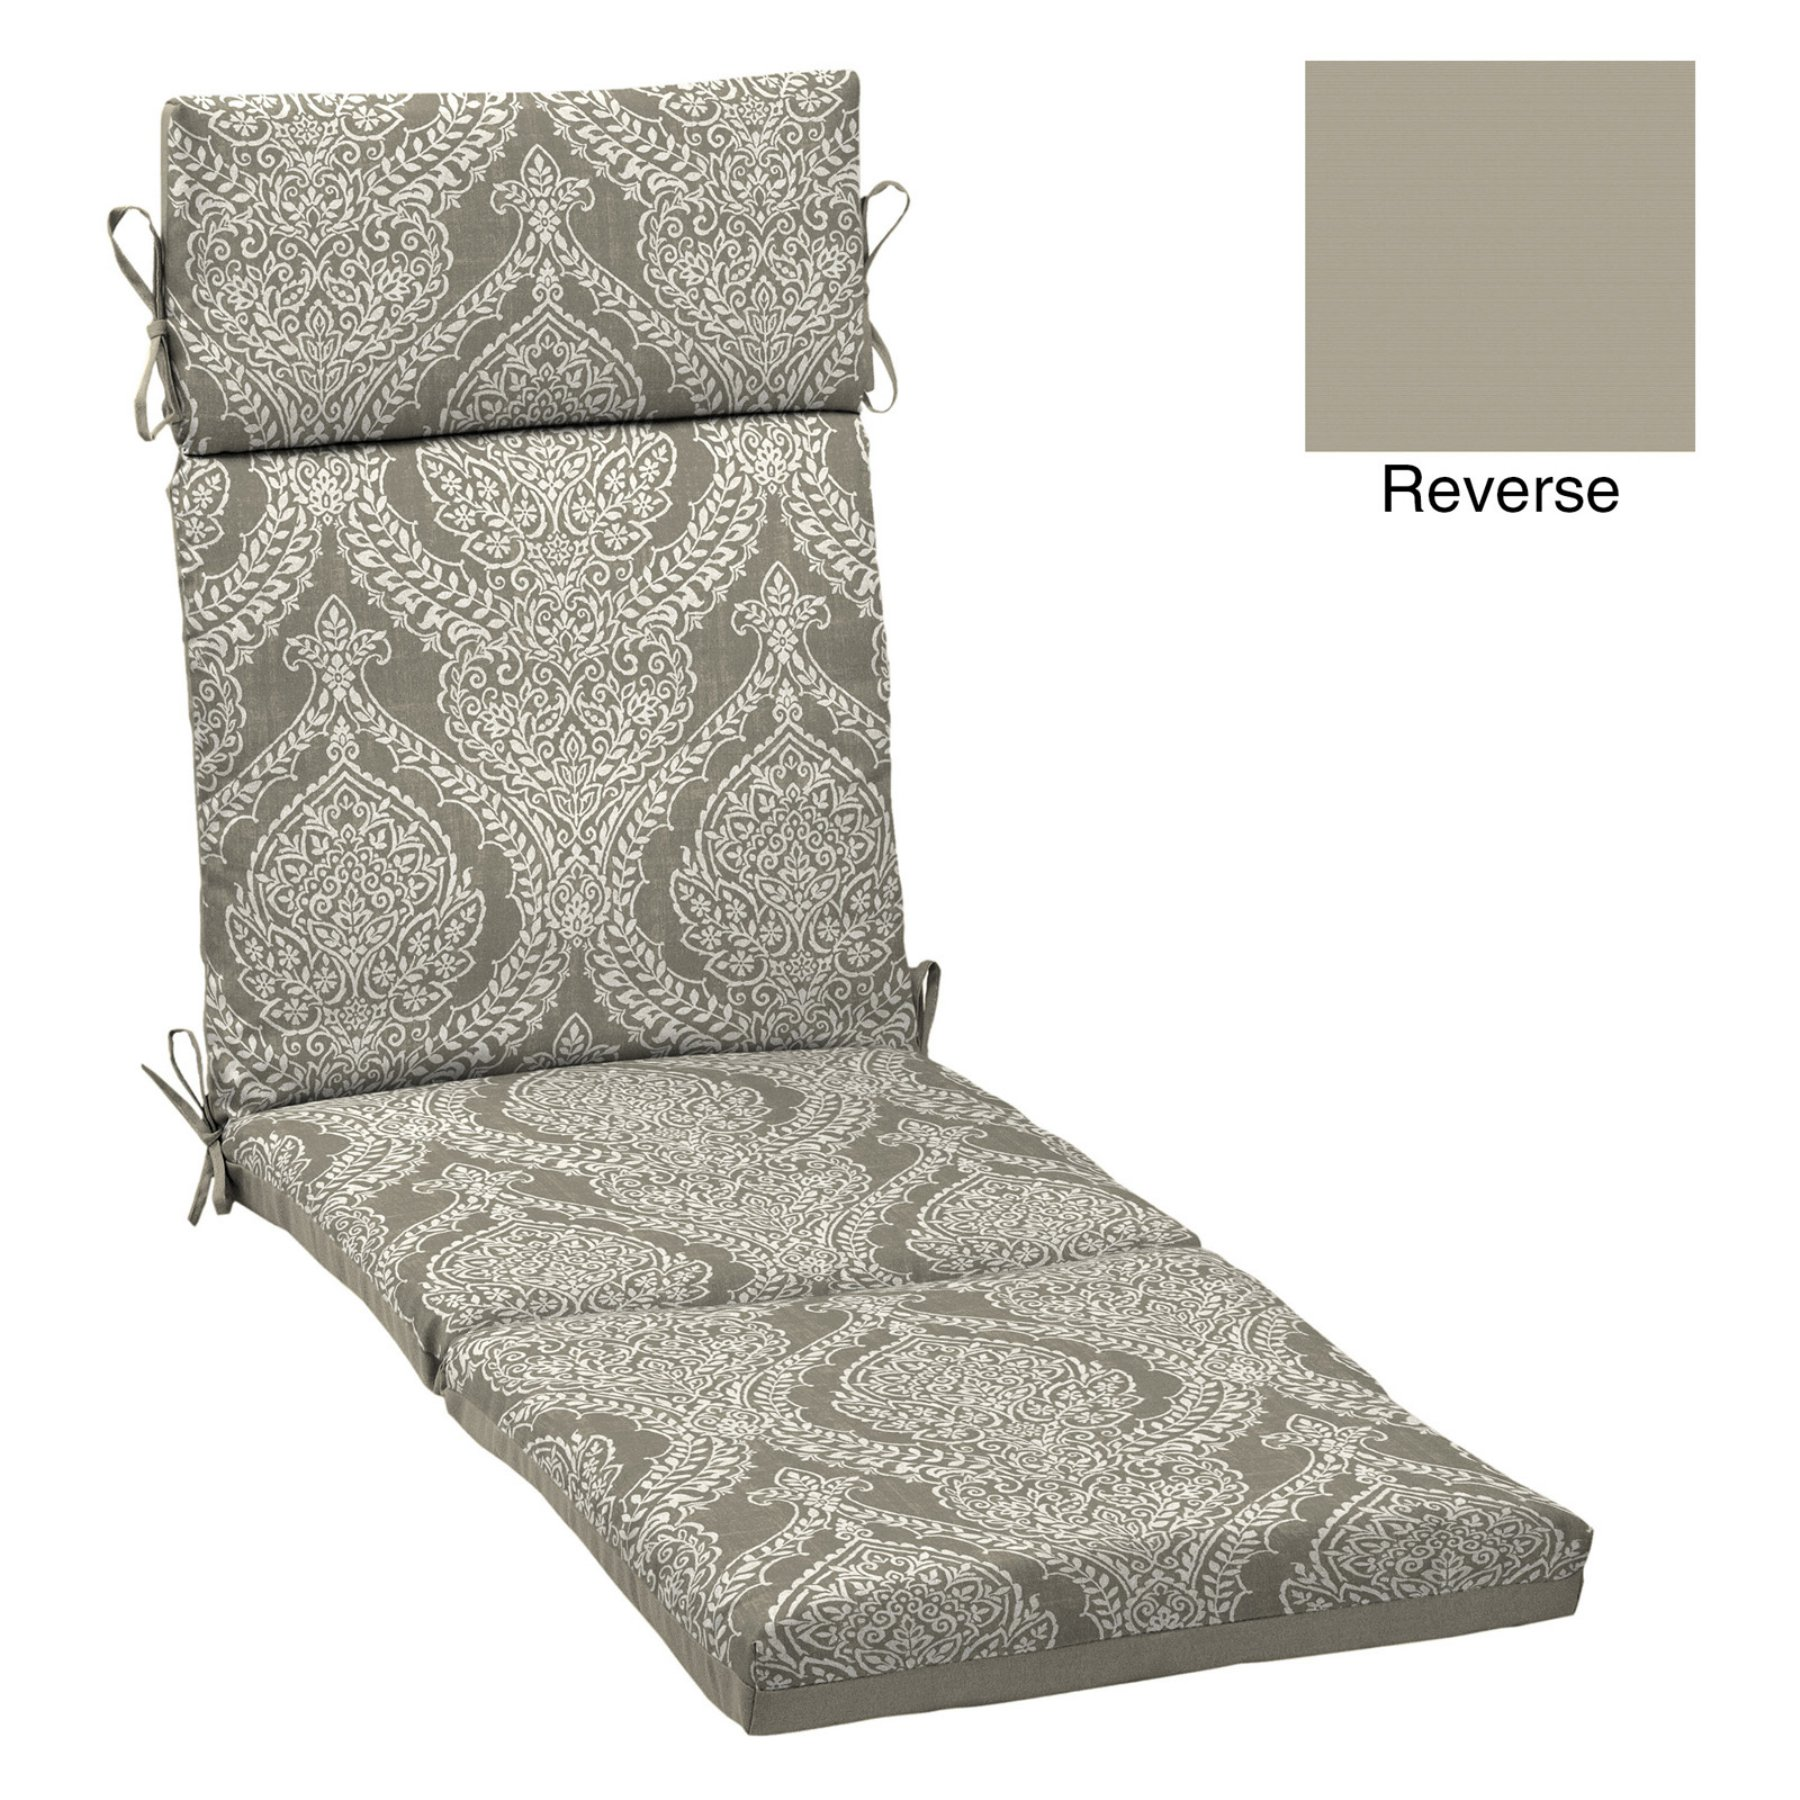 Better Homes & Gardens Outdoor Patio Chaise Lounge Cushion